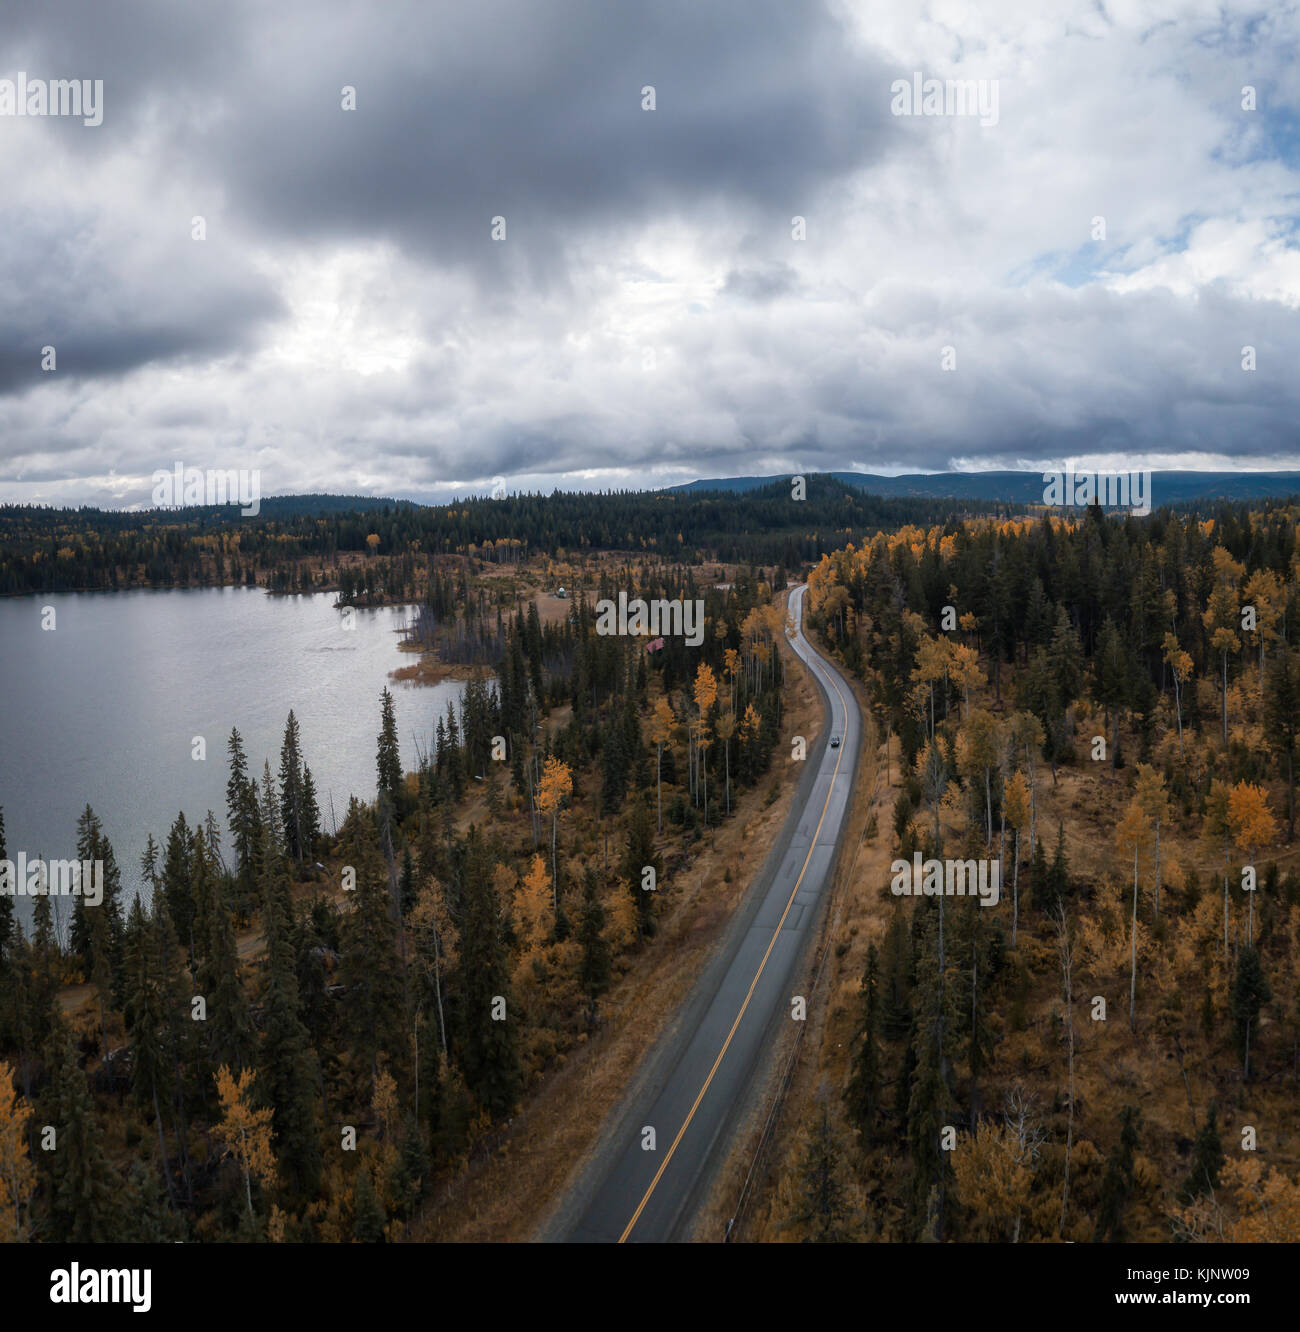 Aerial Drone View Of A Scenic Landscape In The Country Side During An Autumn Season Taken Near Kamloops British Columbia Canada